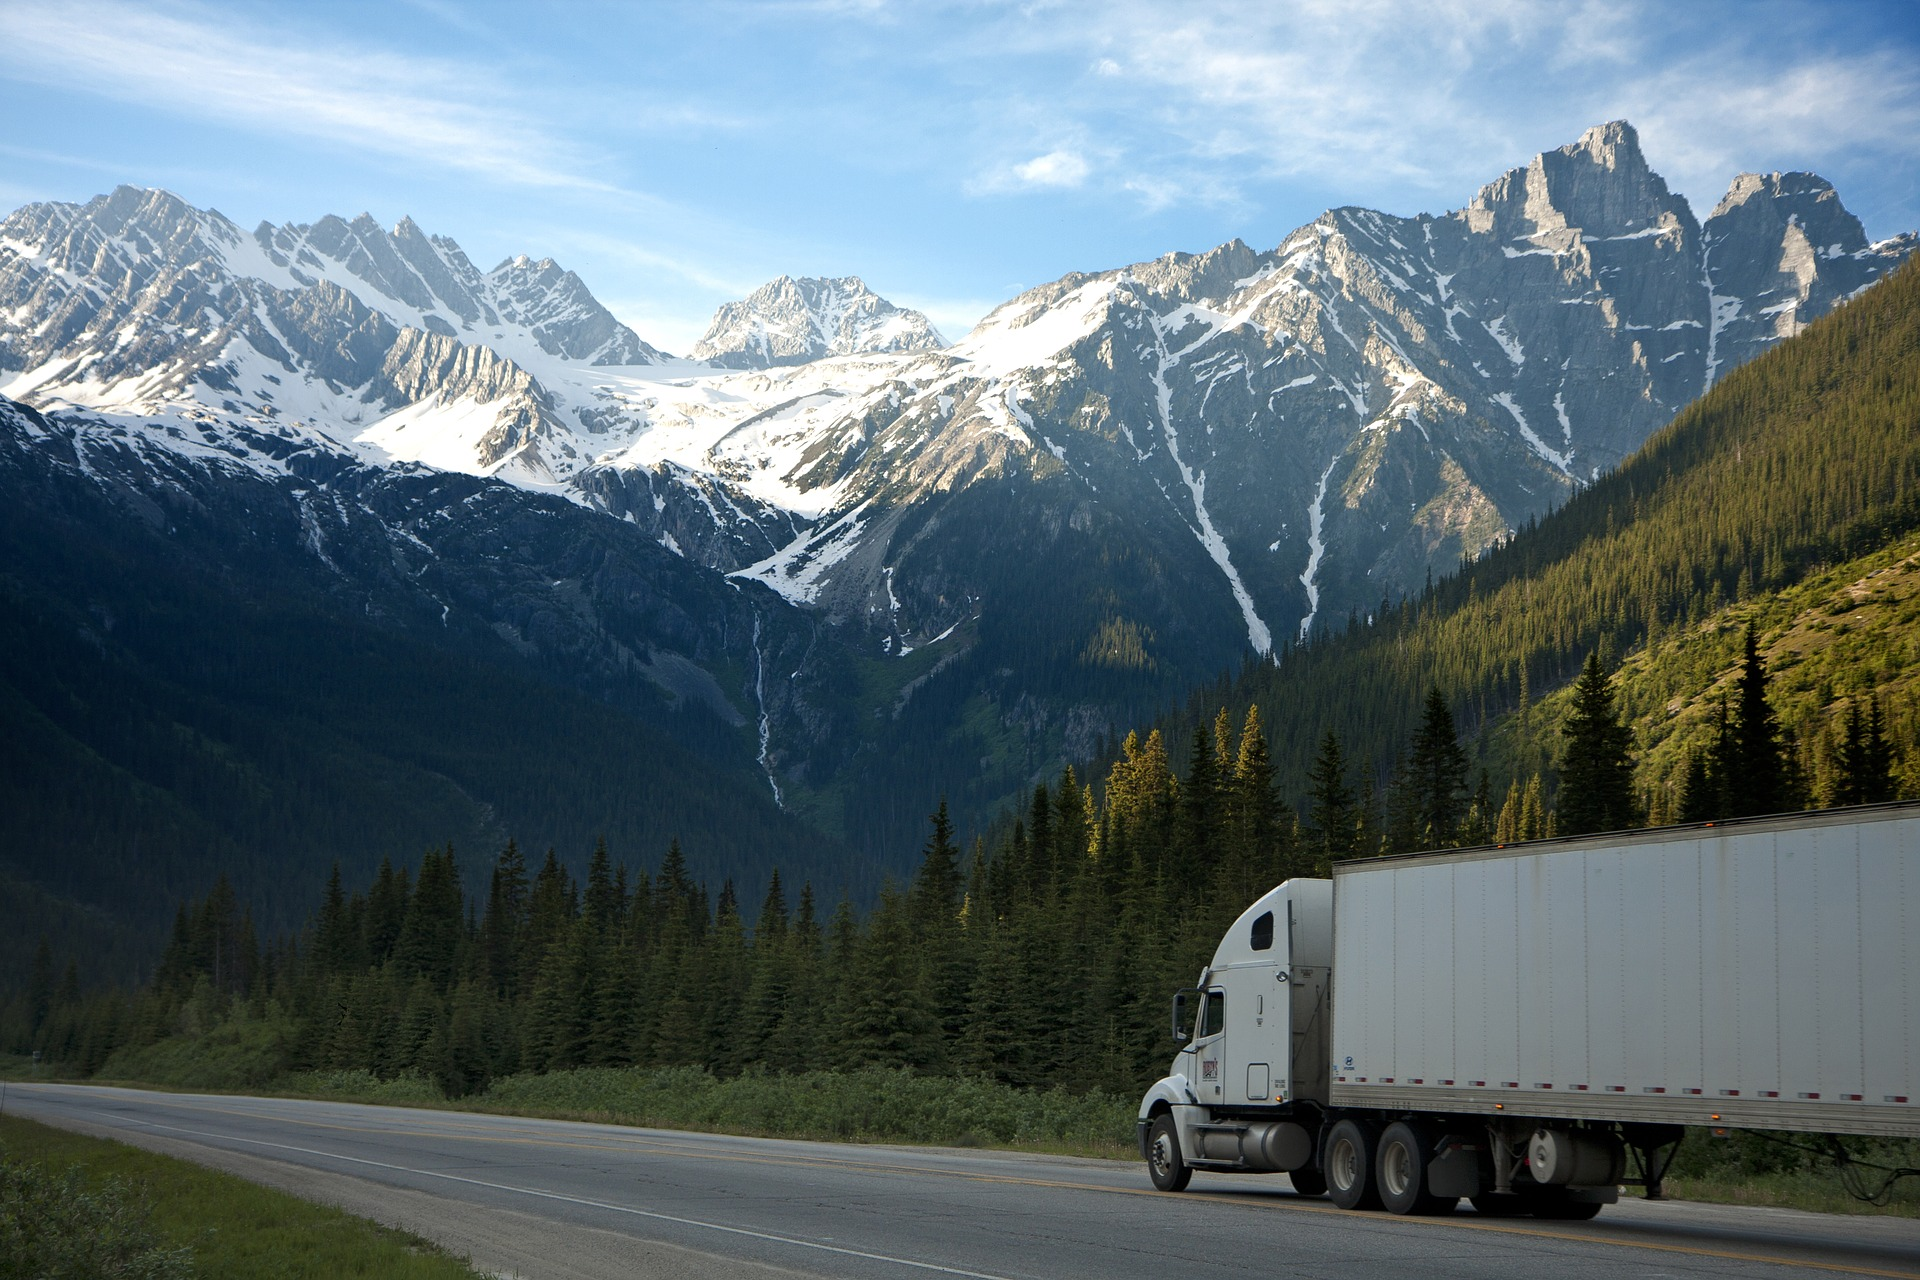 Image of a semi-truck on a highway beneathe a backdrop of snow covered mountain peaks - TAB Bank